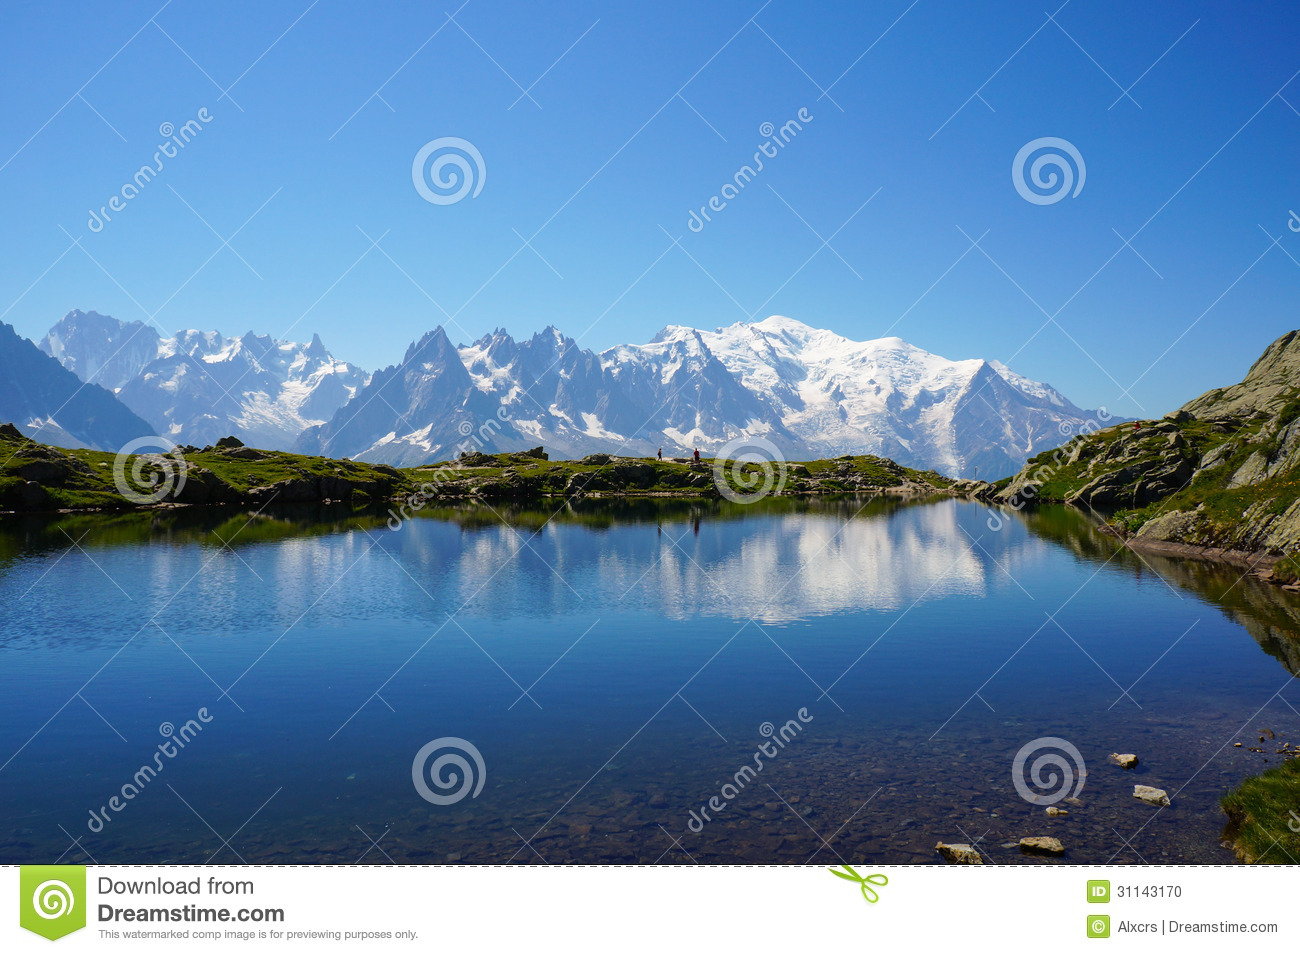 Beautiful Blue Lake In The Mountains Stock Photo - Image: 61706018